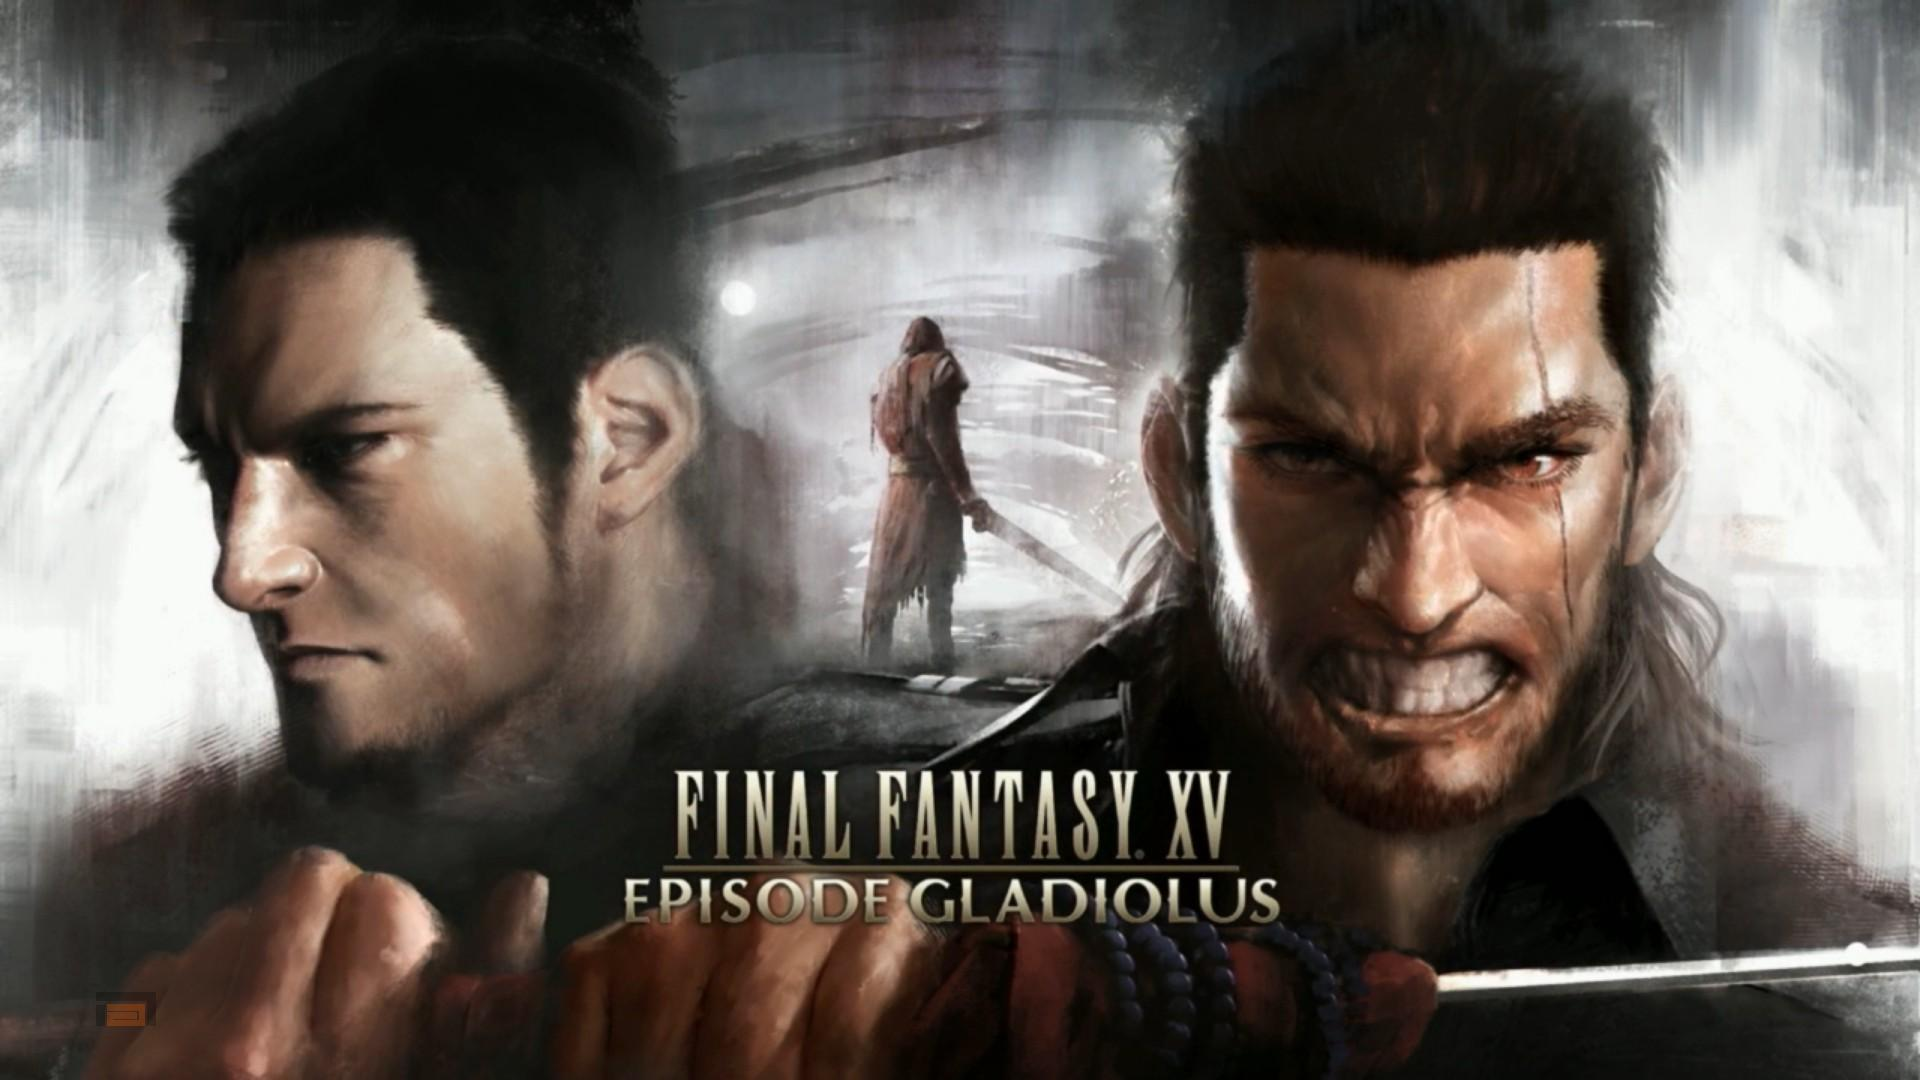 Ya disponible el episodio Gladiolus de Final Fantasy XV